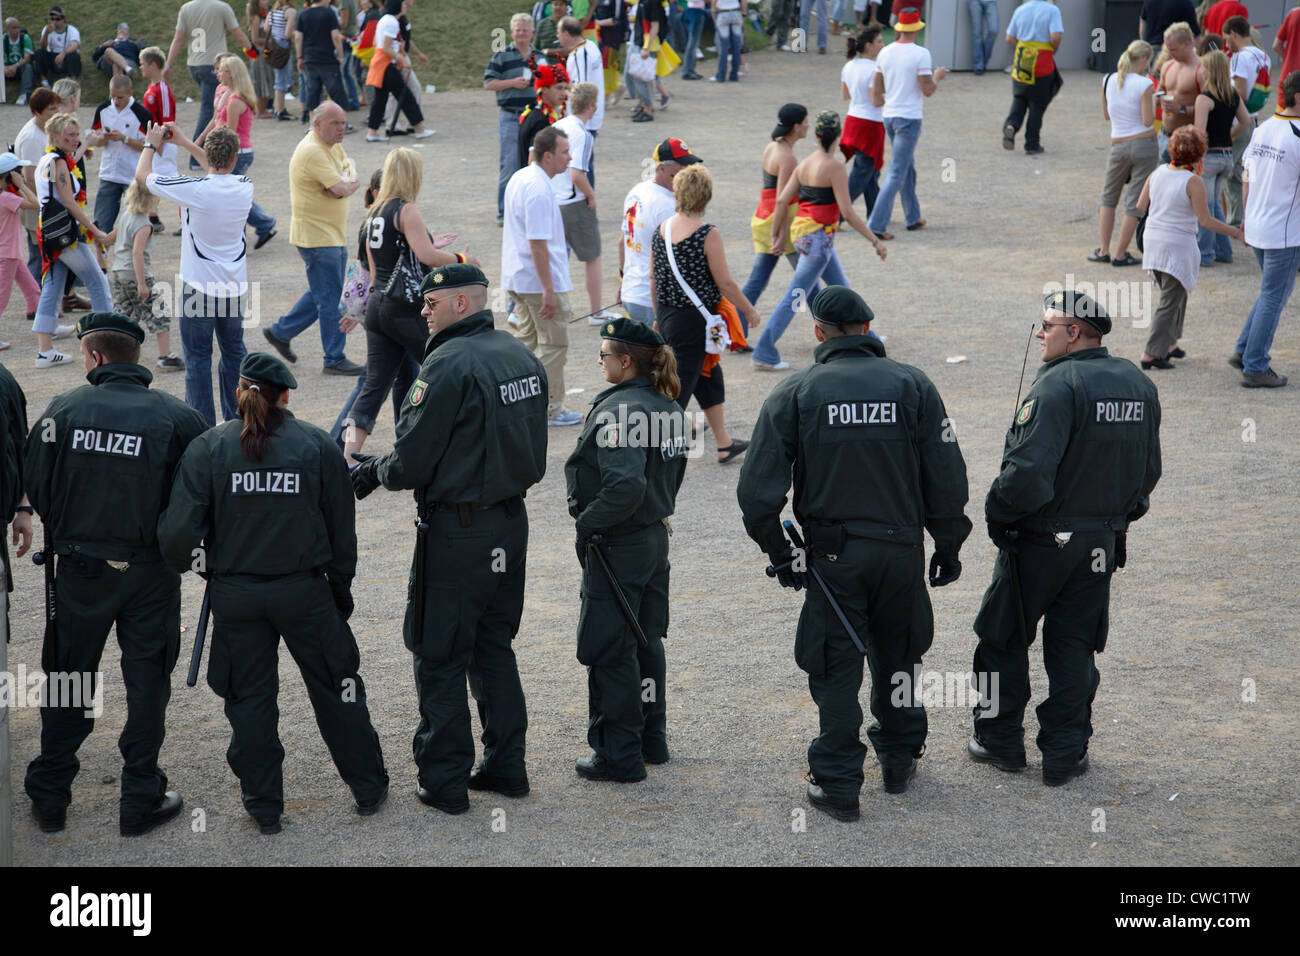 Gelsenkirchen, police at the Fan Fest FIFA World Cup 2006 - Stock Image